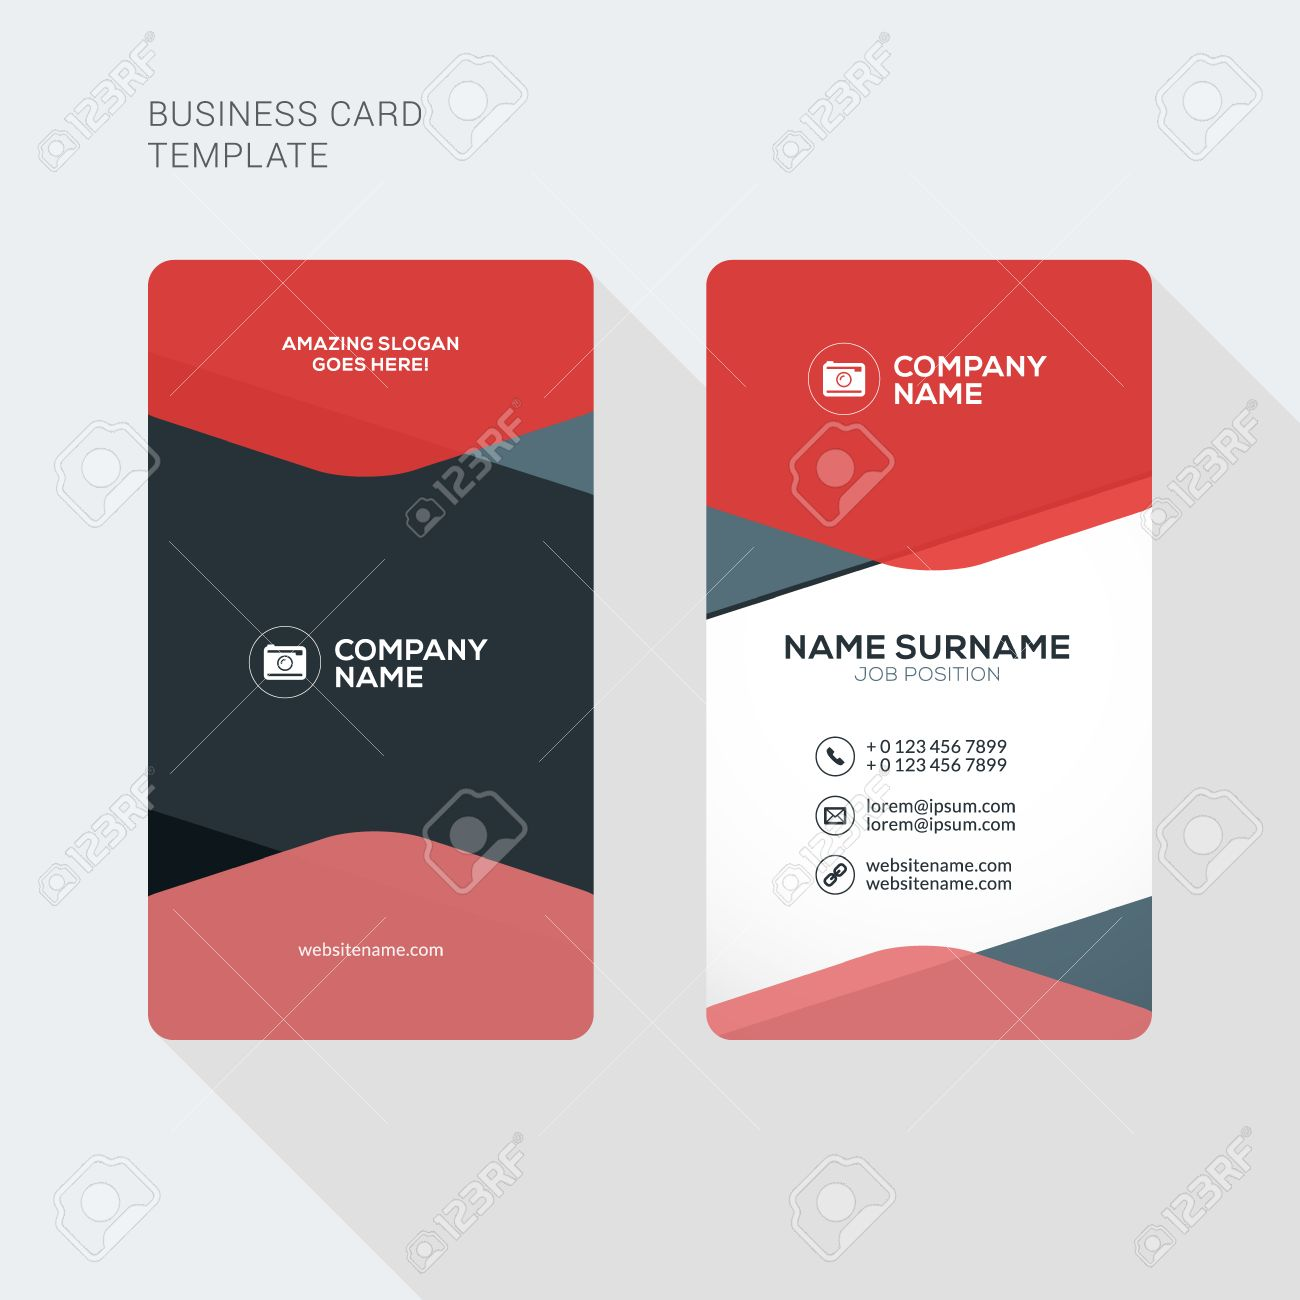 Modern Creative and Clean Two Sided Business Card Template. Flat Style Vector Illustration. Vertical Visiting or Business Card Template. Stationery Design - 52841529